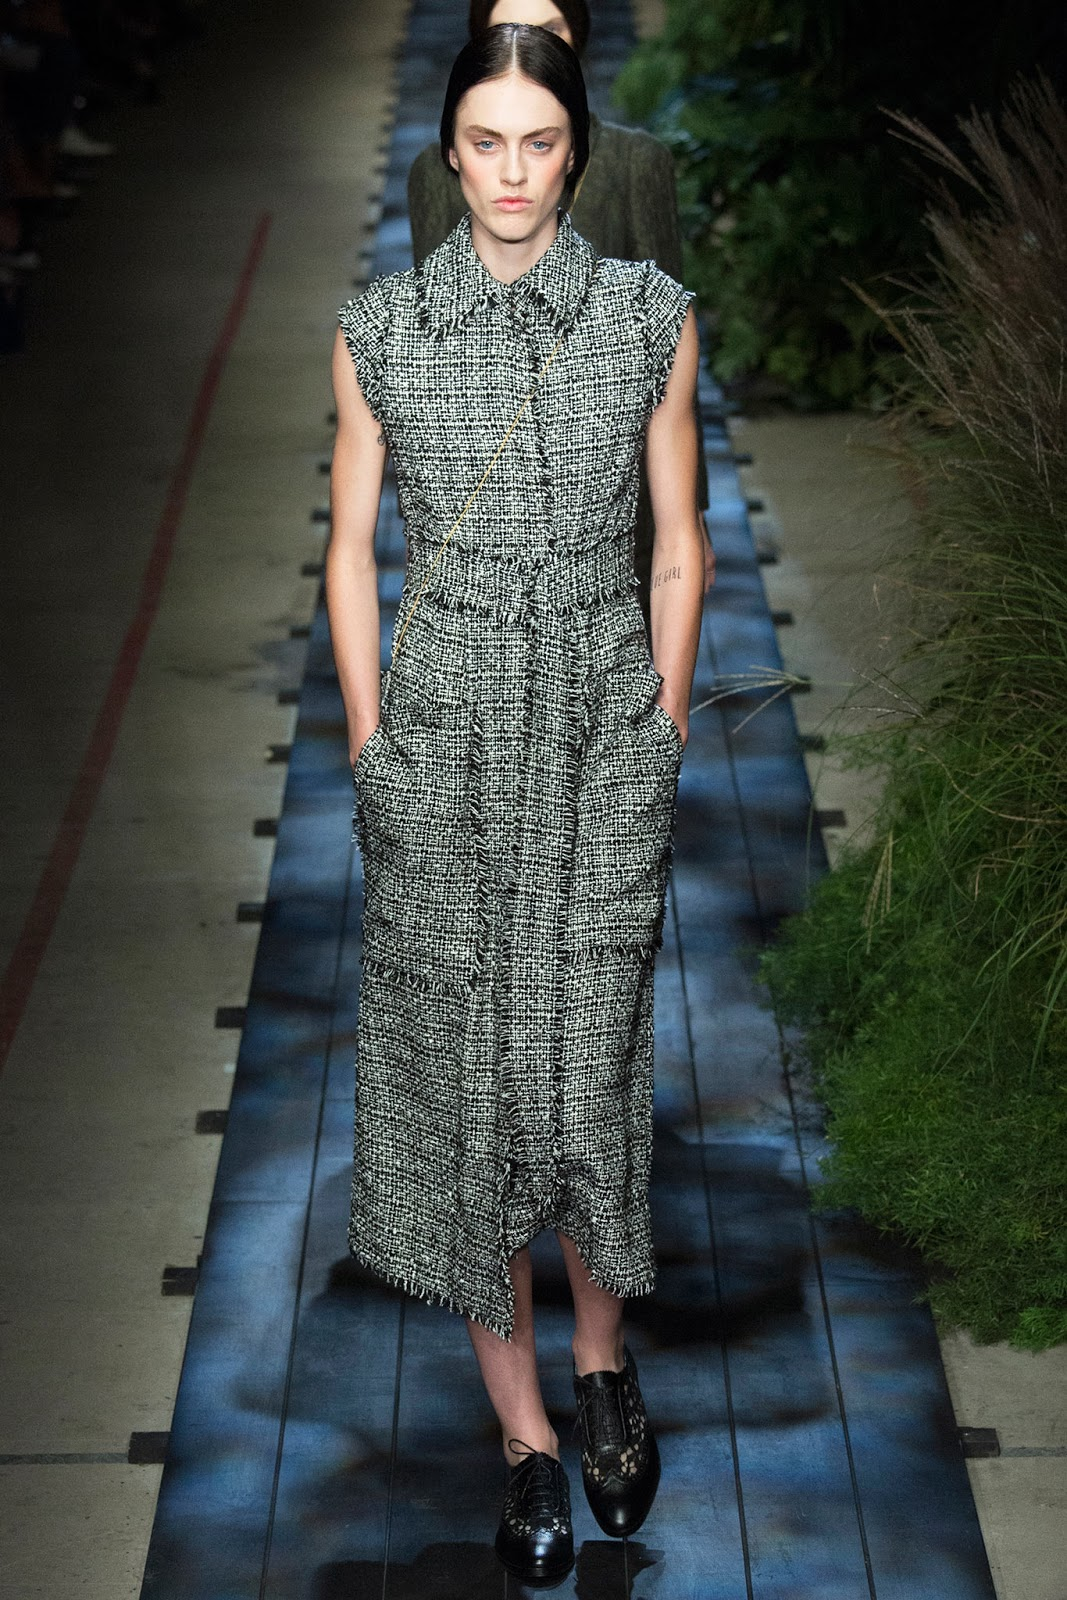 spring/summer 2015 trends / shirtdress / history of shirt dress / erdem spring 2015 / via fashioned by love british fashion blog